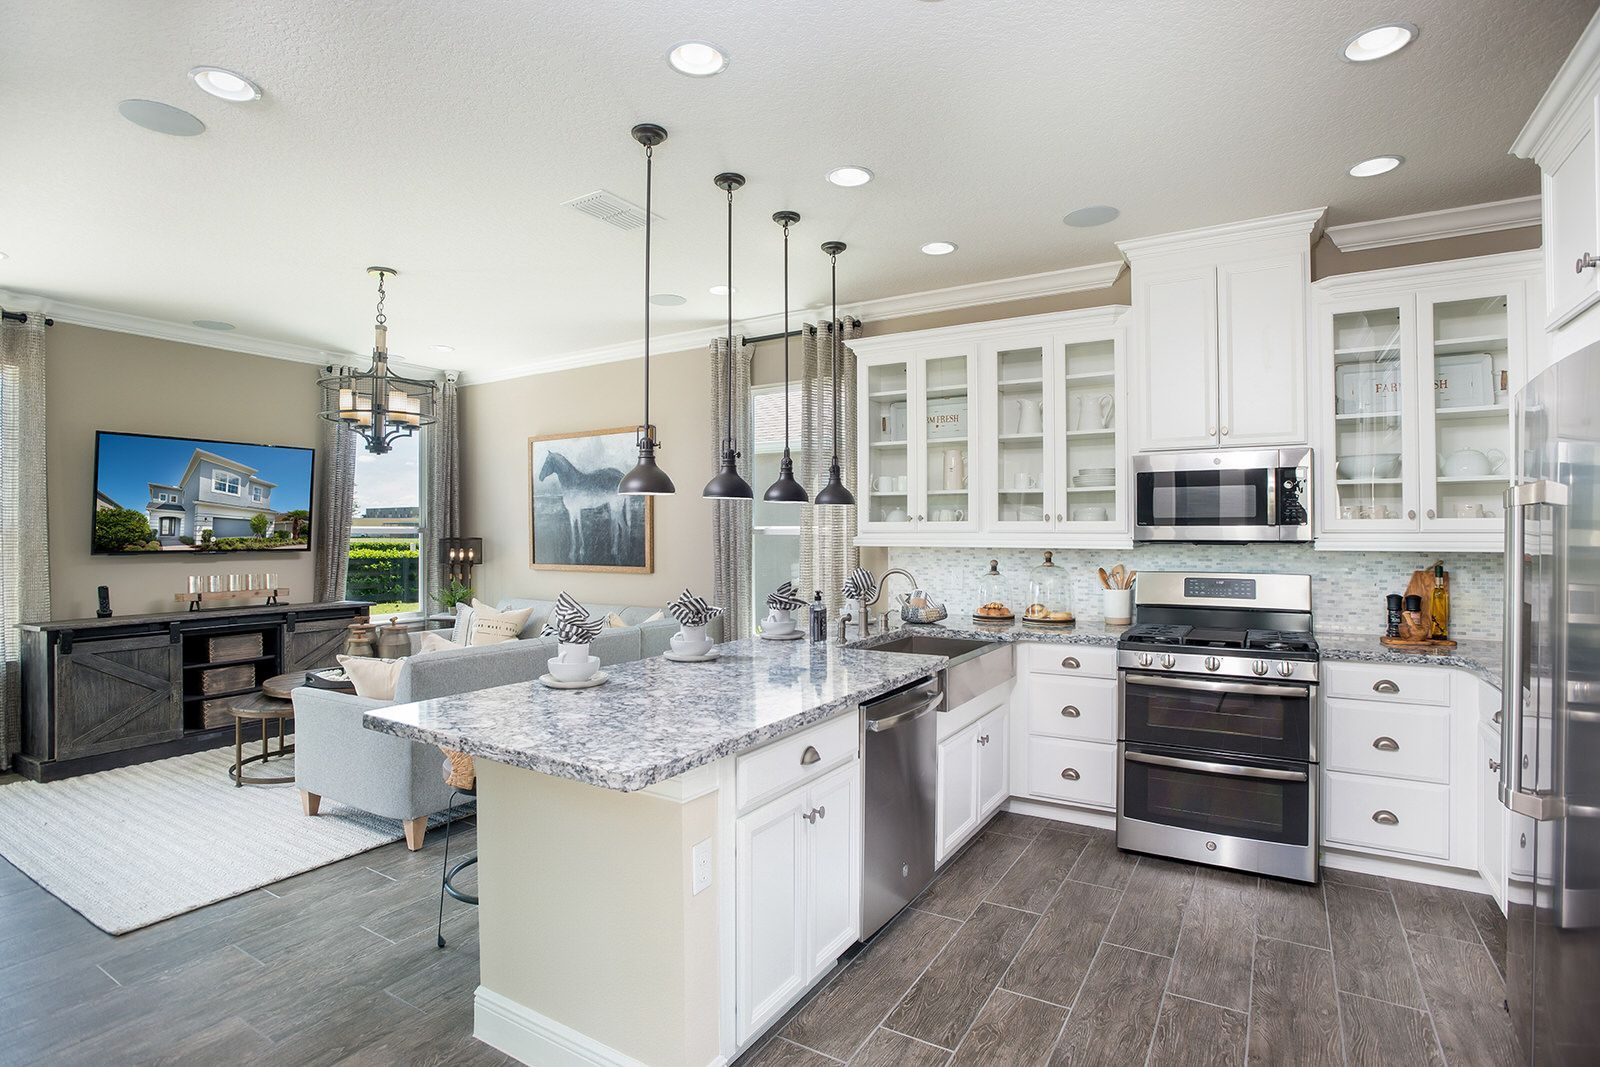 Kitchen featured in the Boca Grande By Taylor Morrison in Orlando, FL